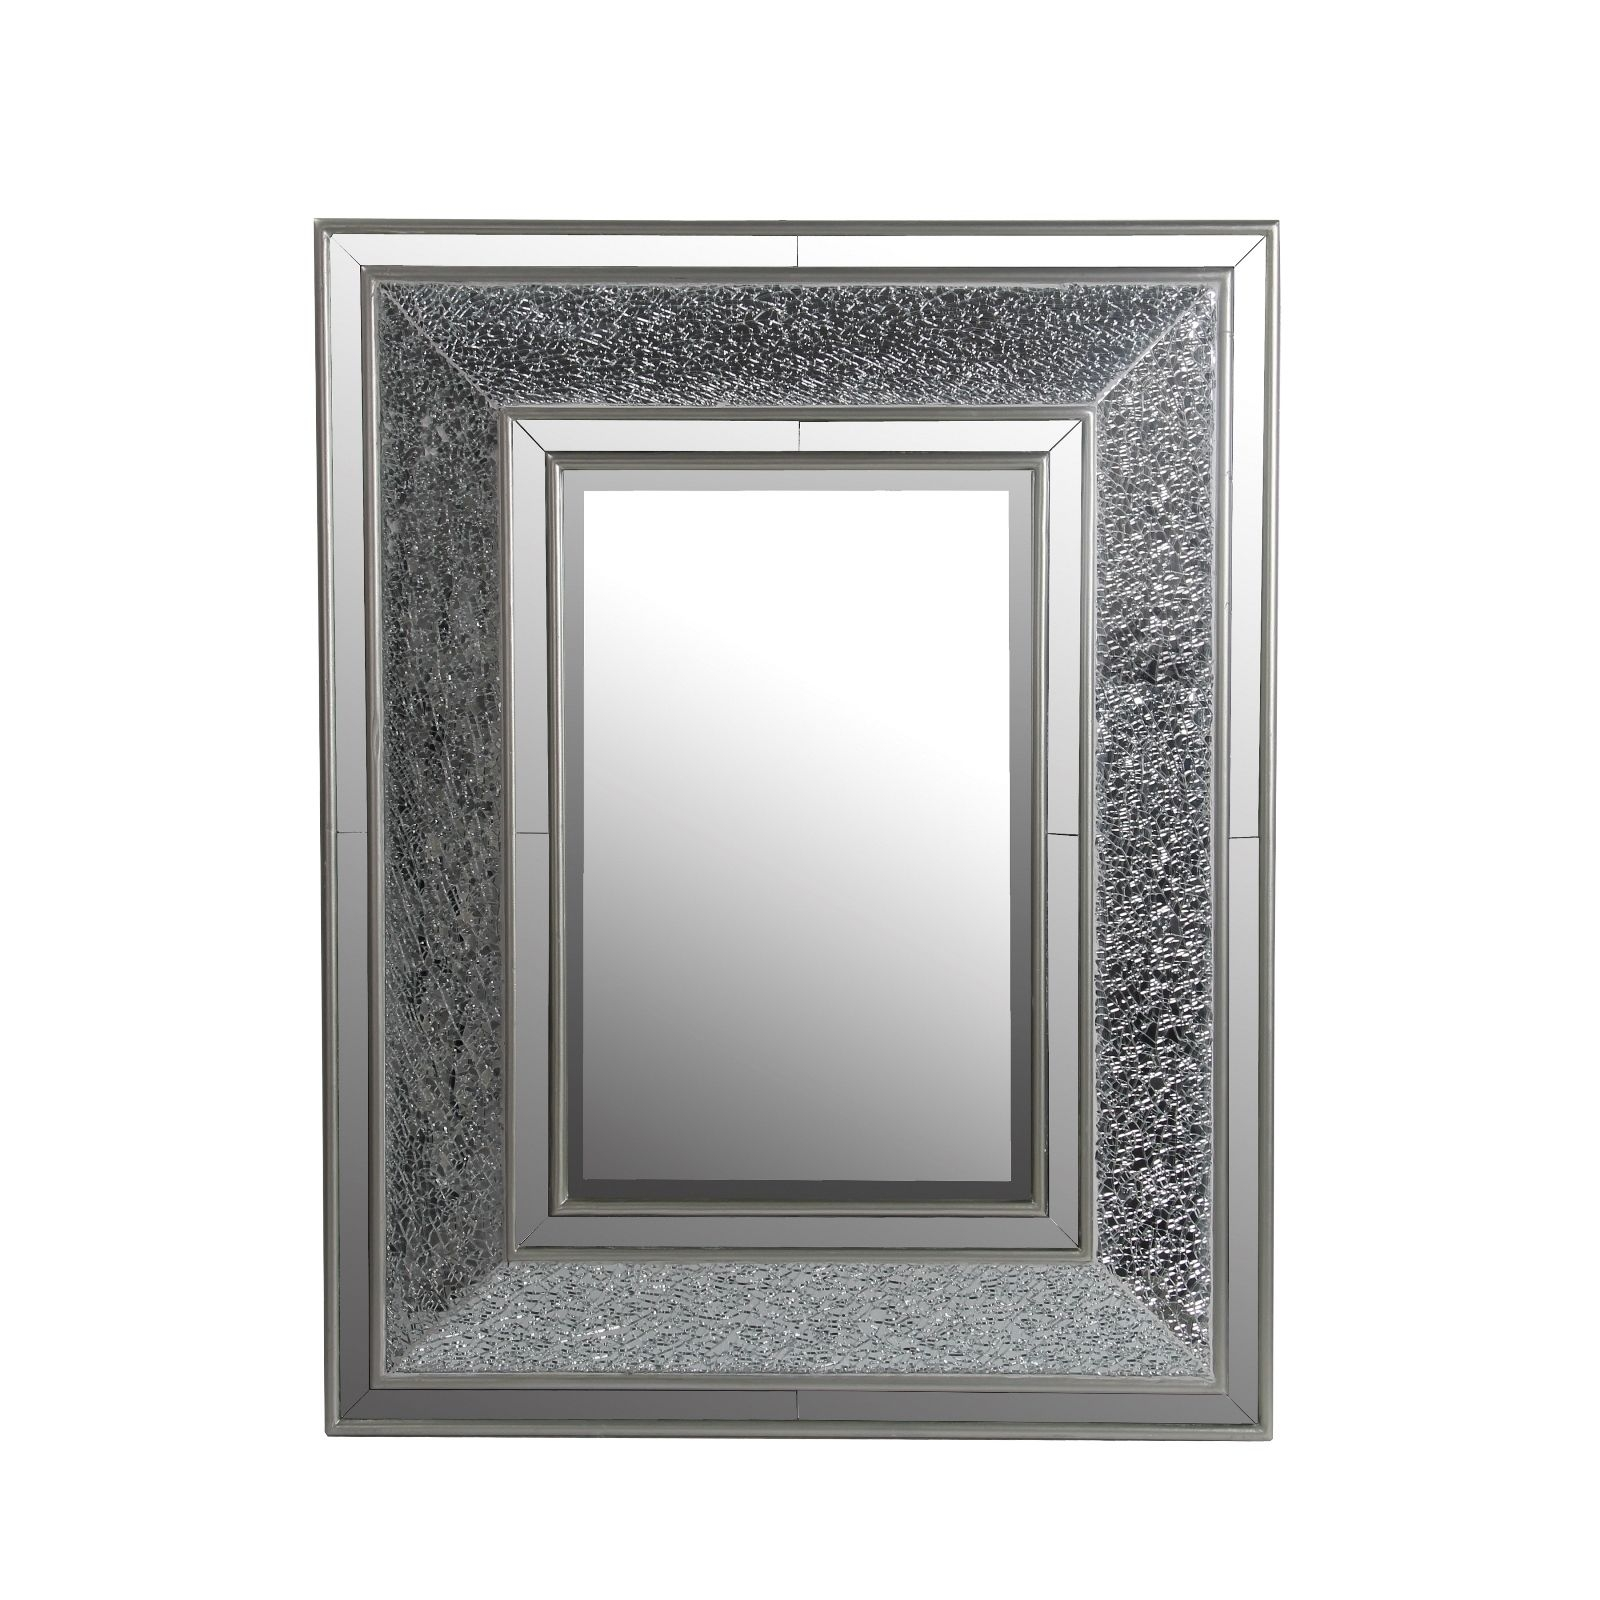 Privilege Beveled Rectangle Mosaic Mirror 30x3x38 Black Inside Black Mosaic Mirror (Image 13 of 15)